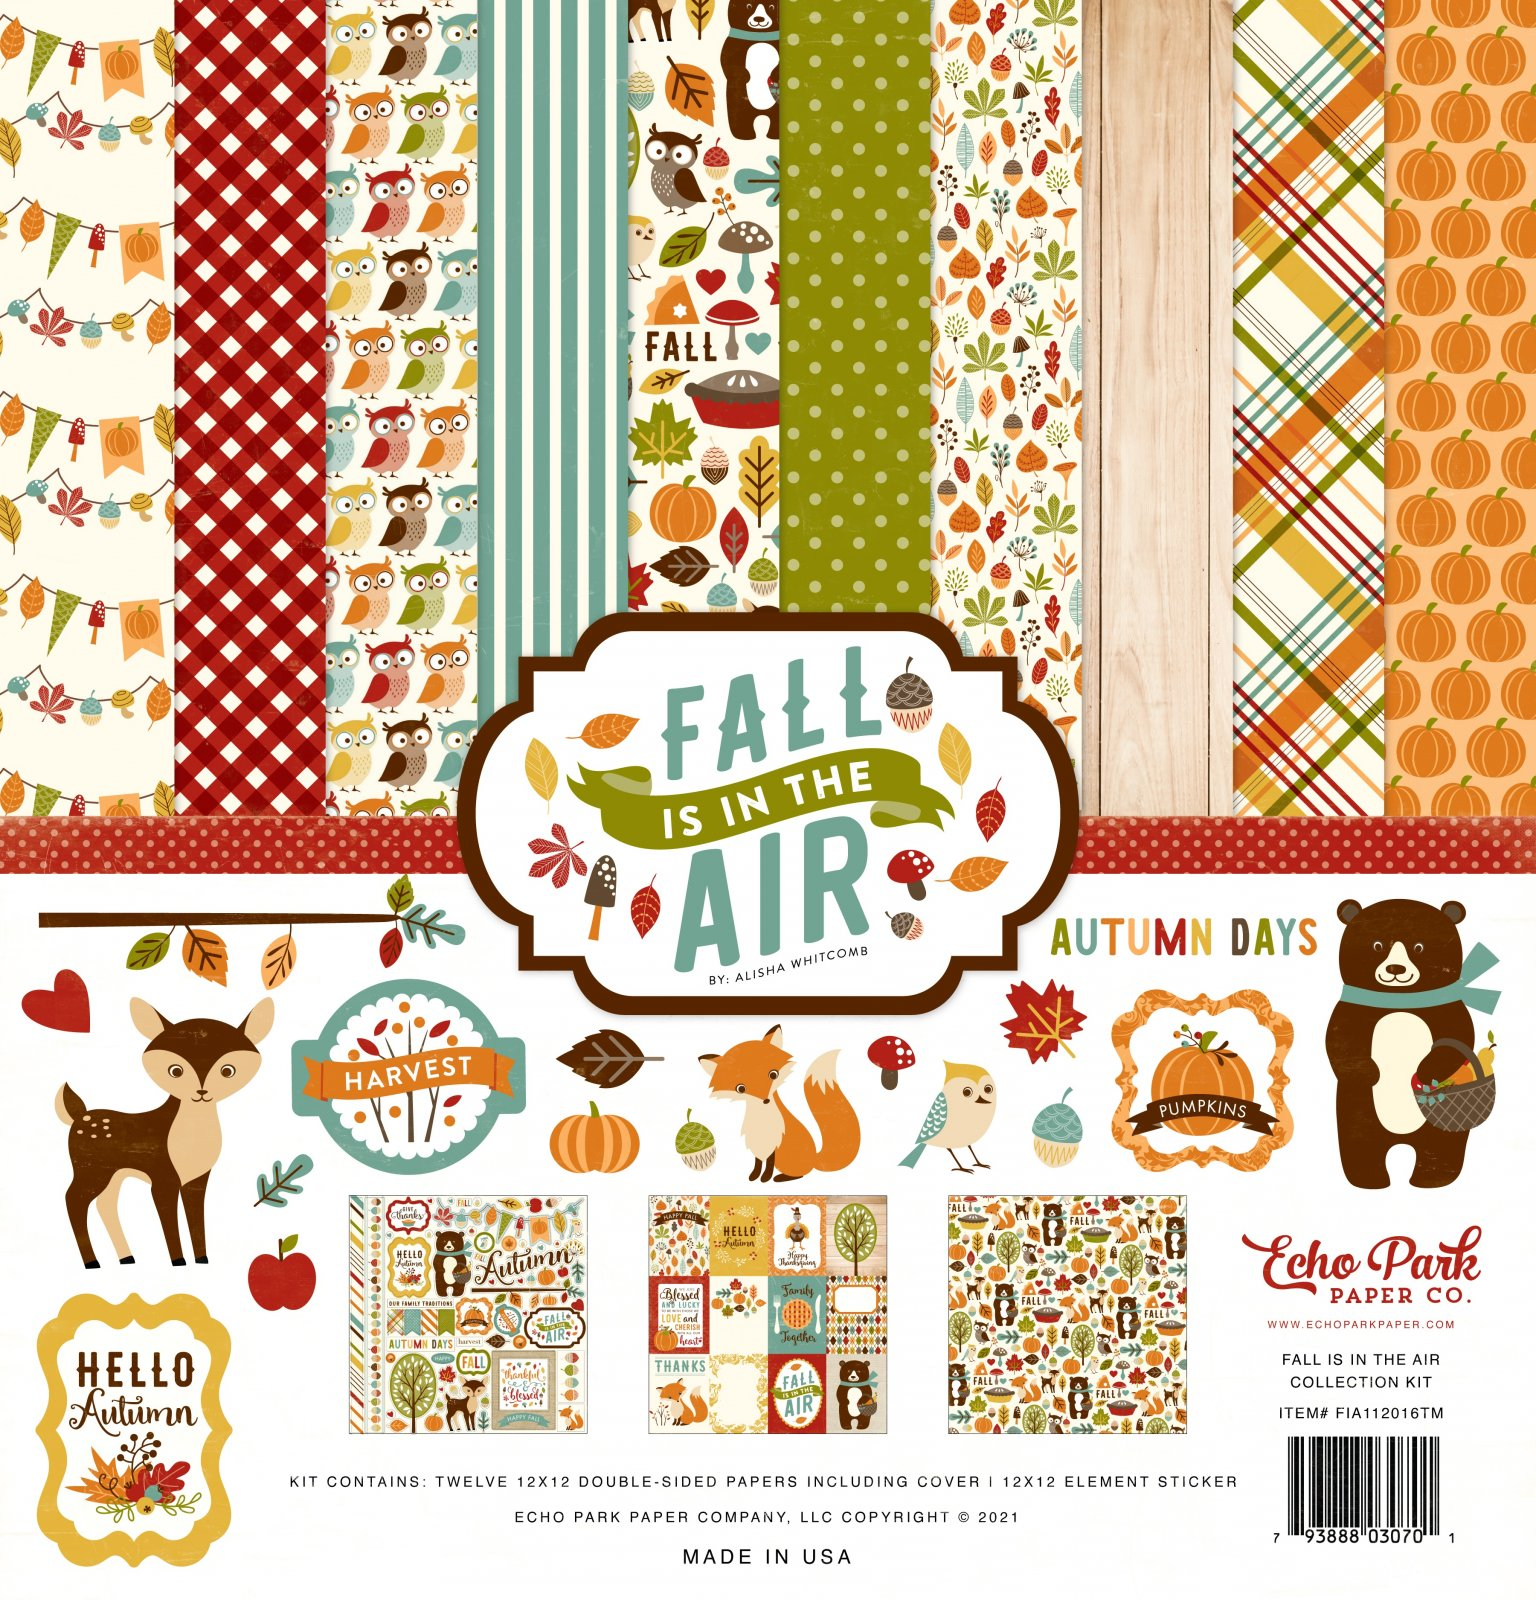 Echo Park Collection Kit 12x12 - Fall is in the Air